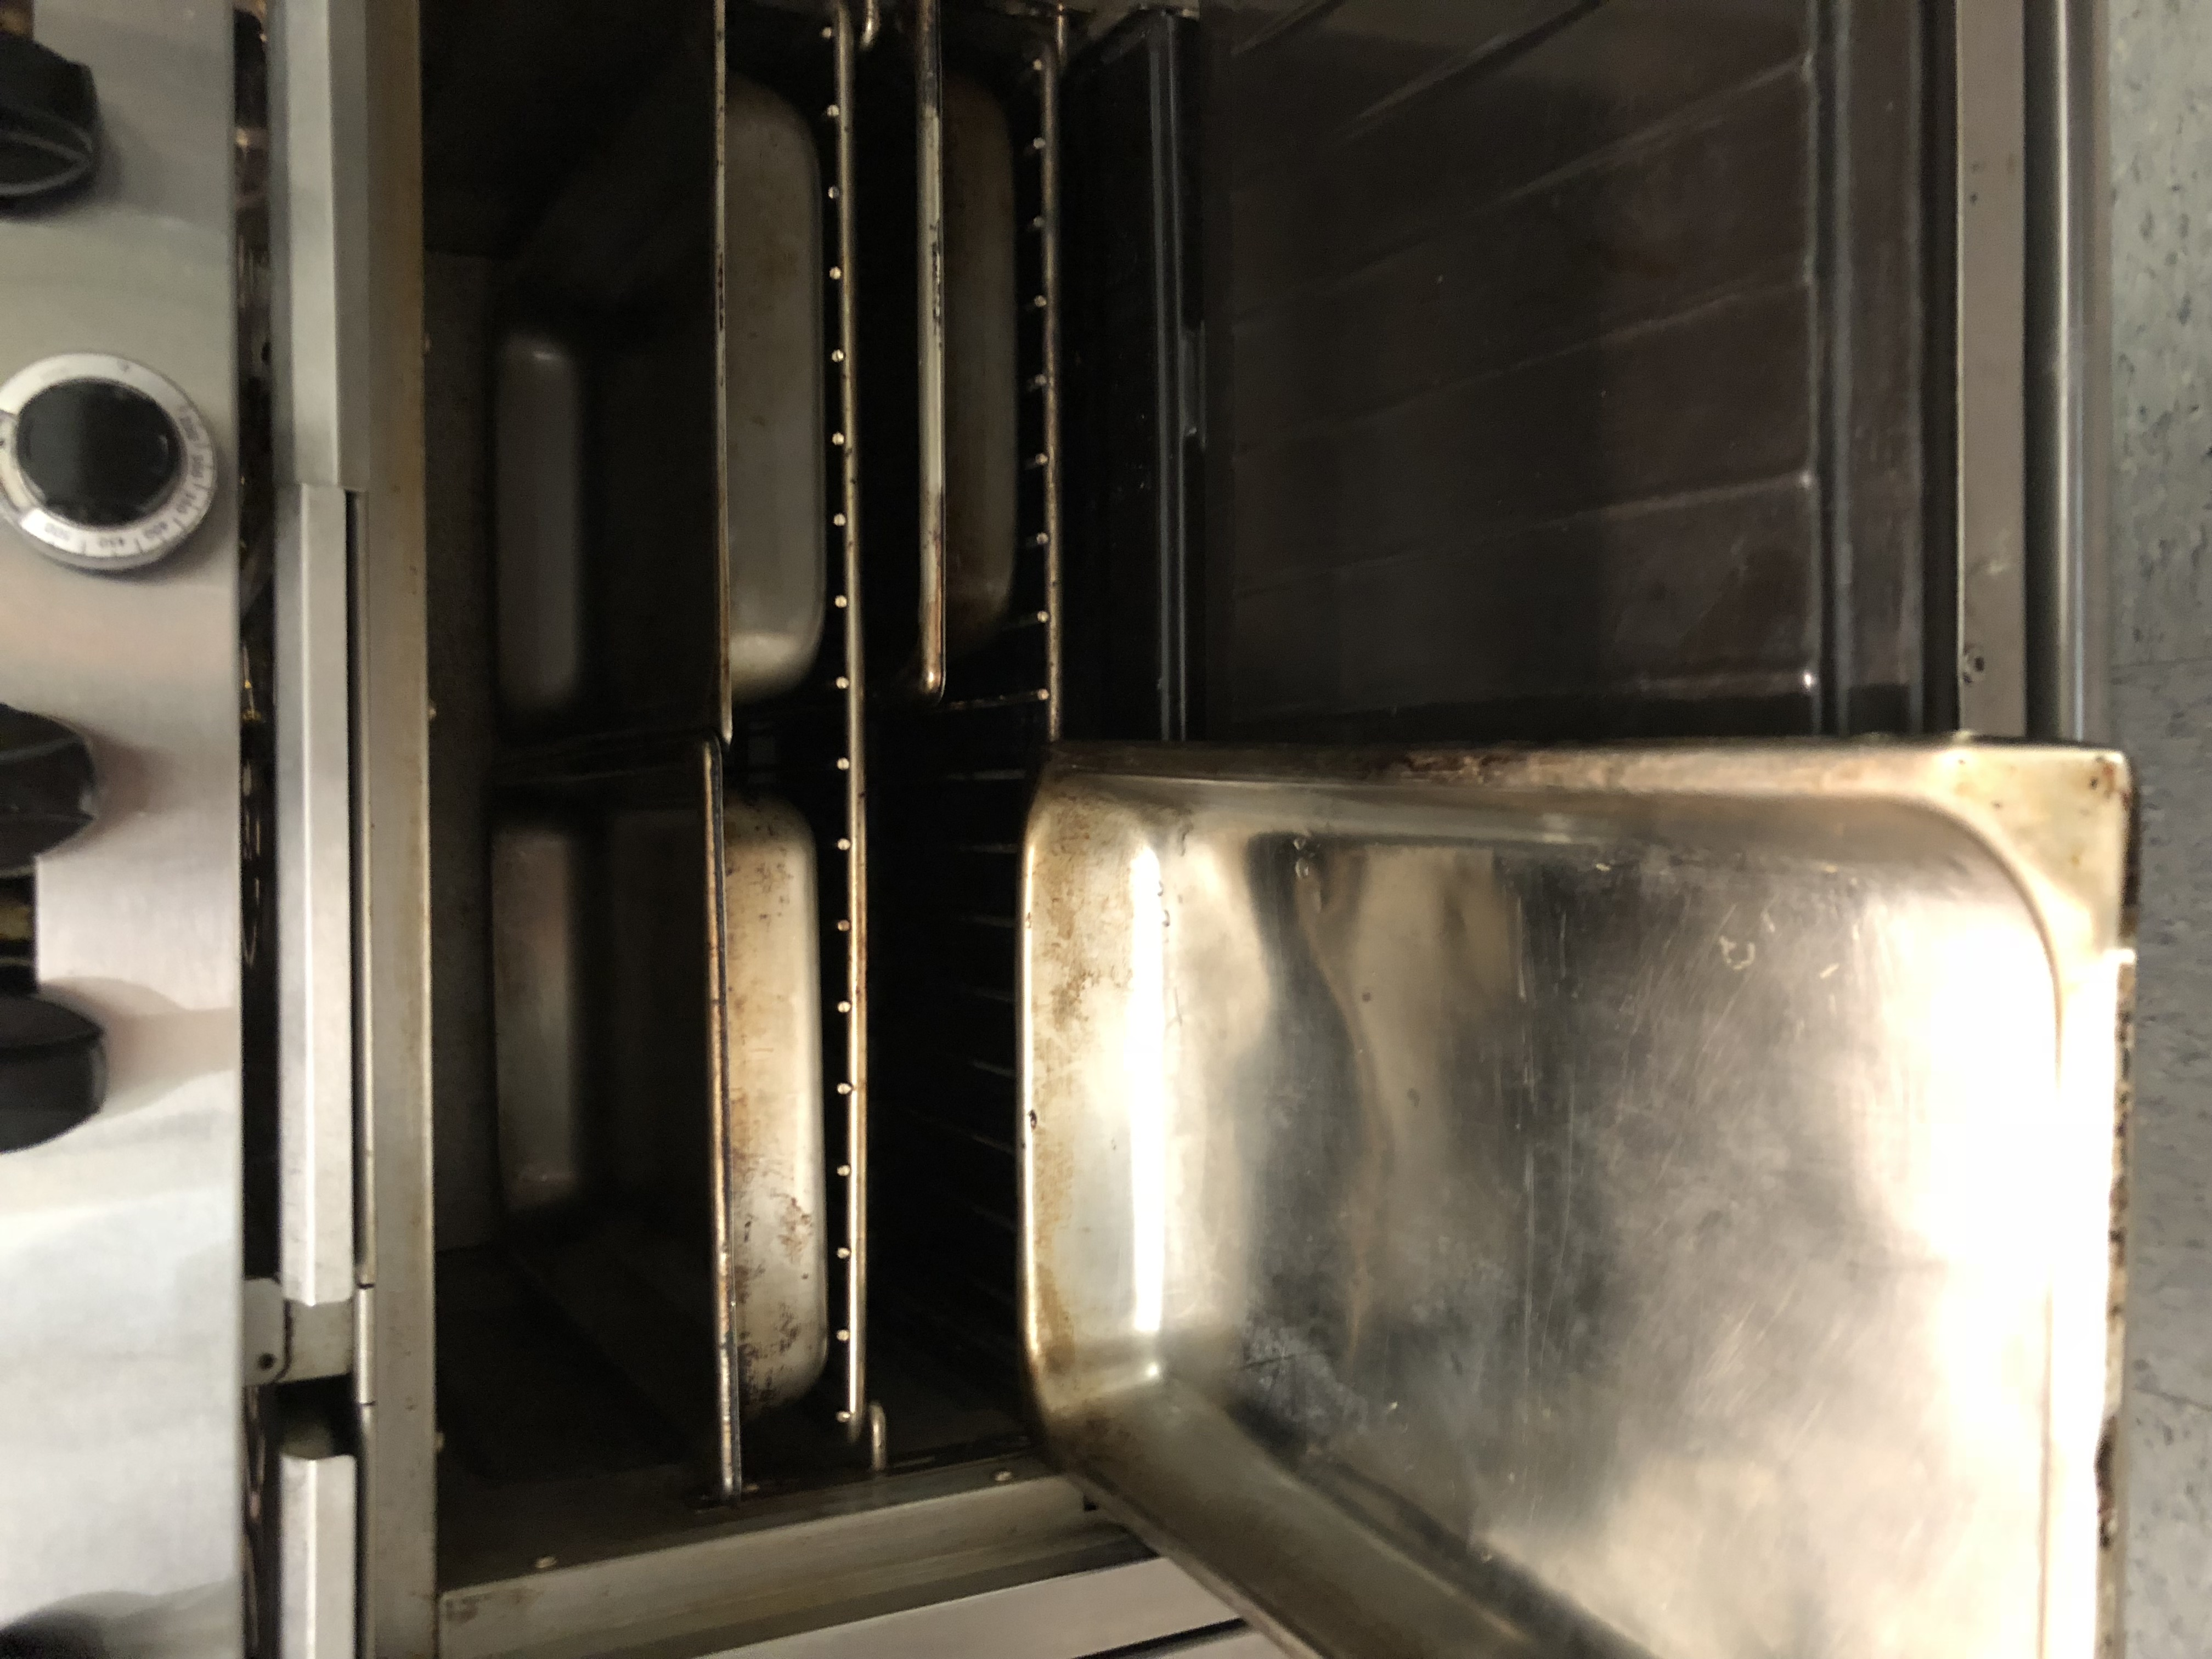 4 Large Hotel Pans in gas oven